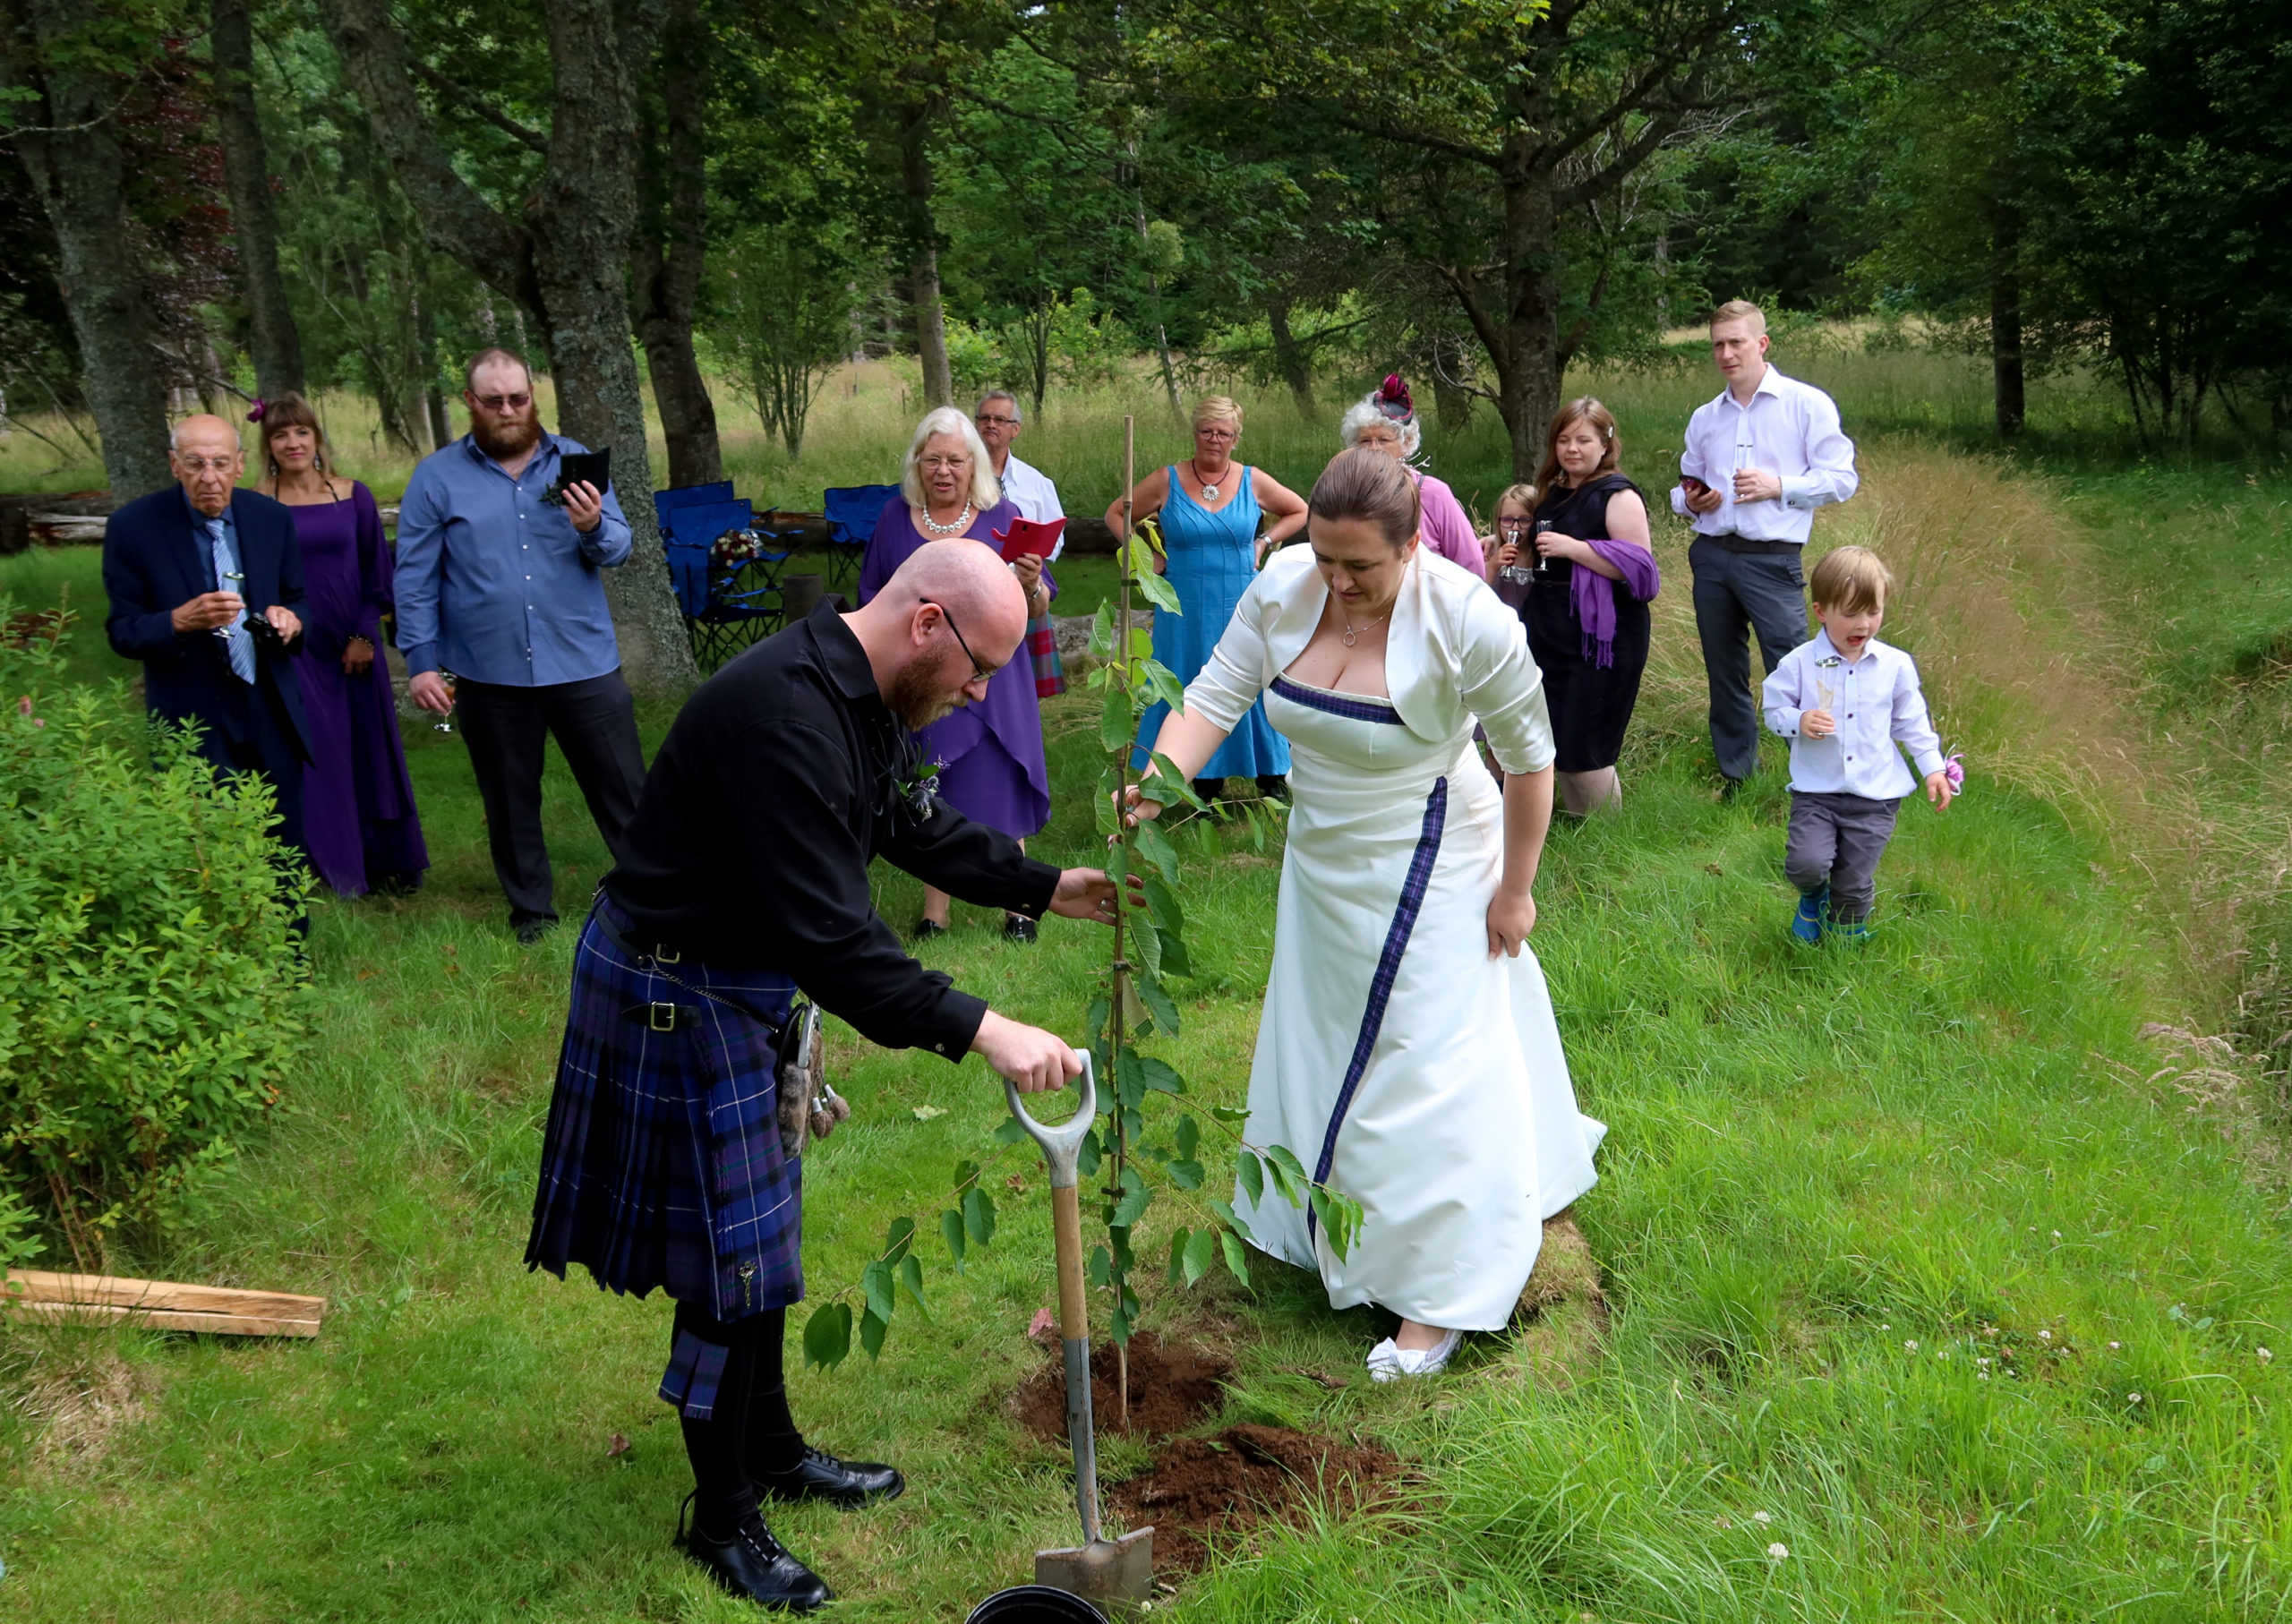 couple planting a tree in their wedding ceremony with friends